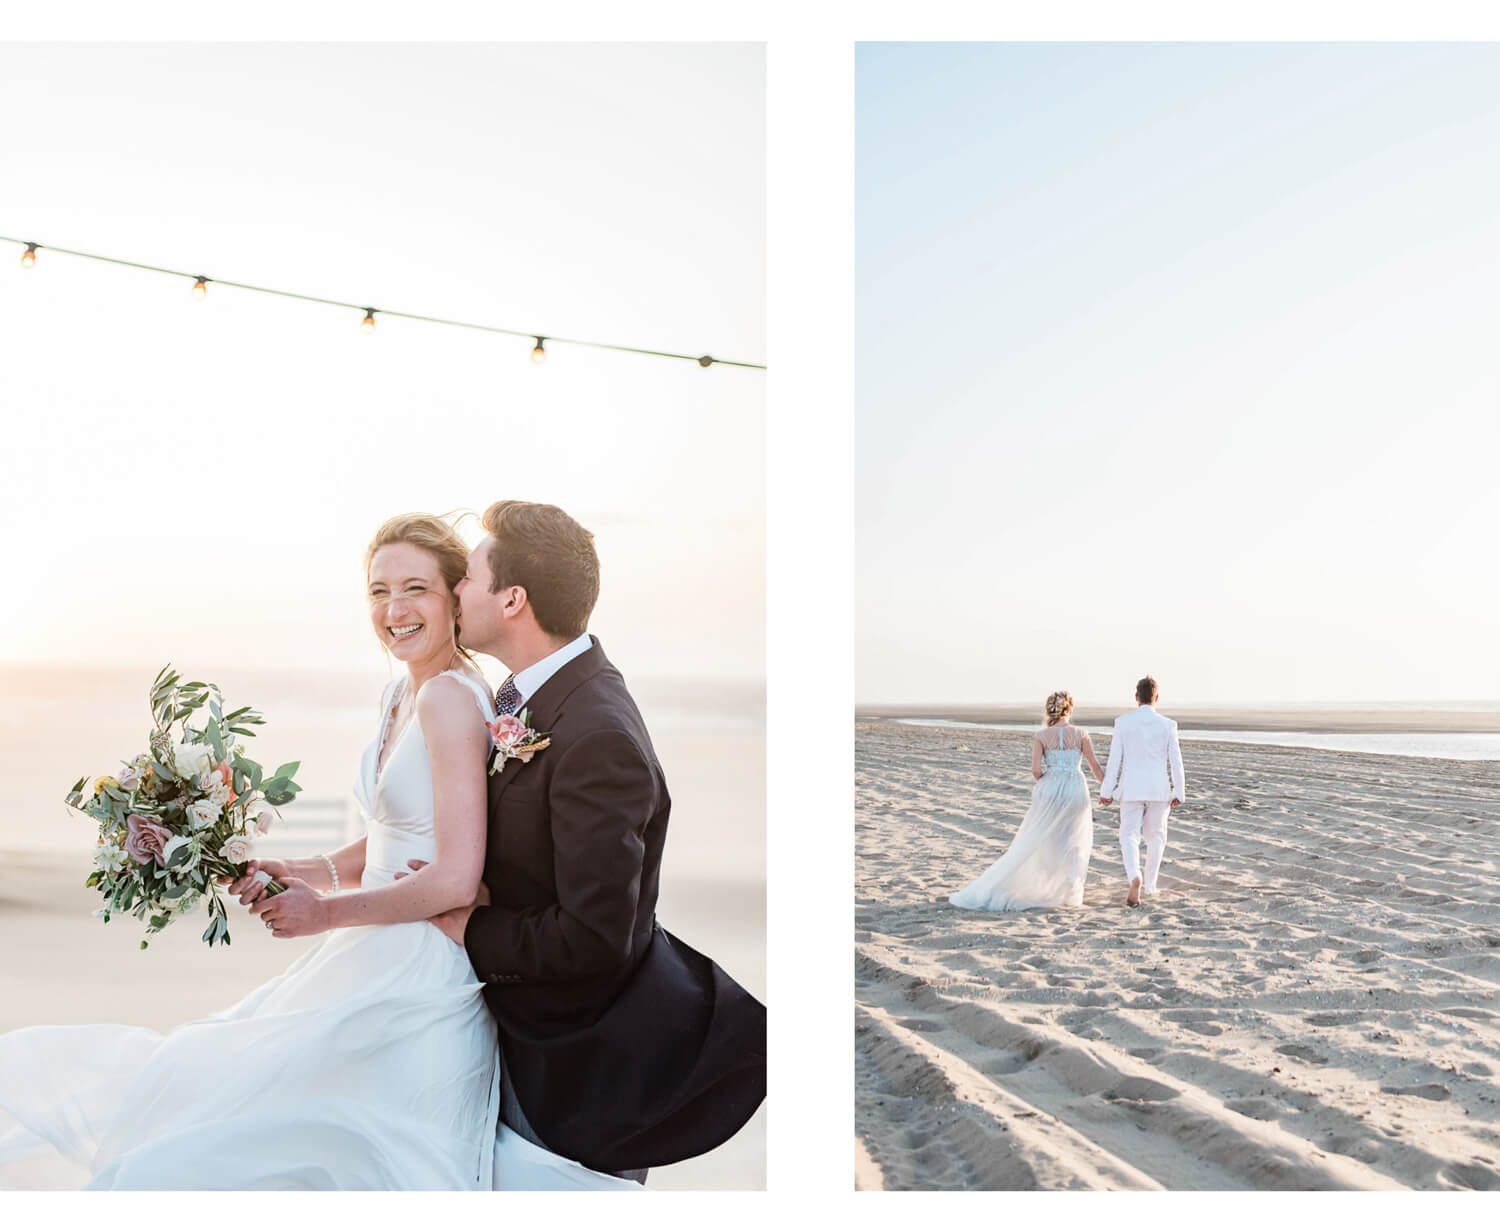 Netherlands wedding photography of a bride and groom on The Hague beach in Scheveningen